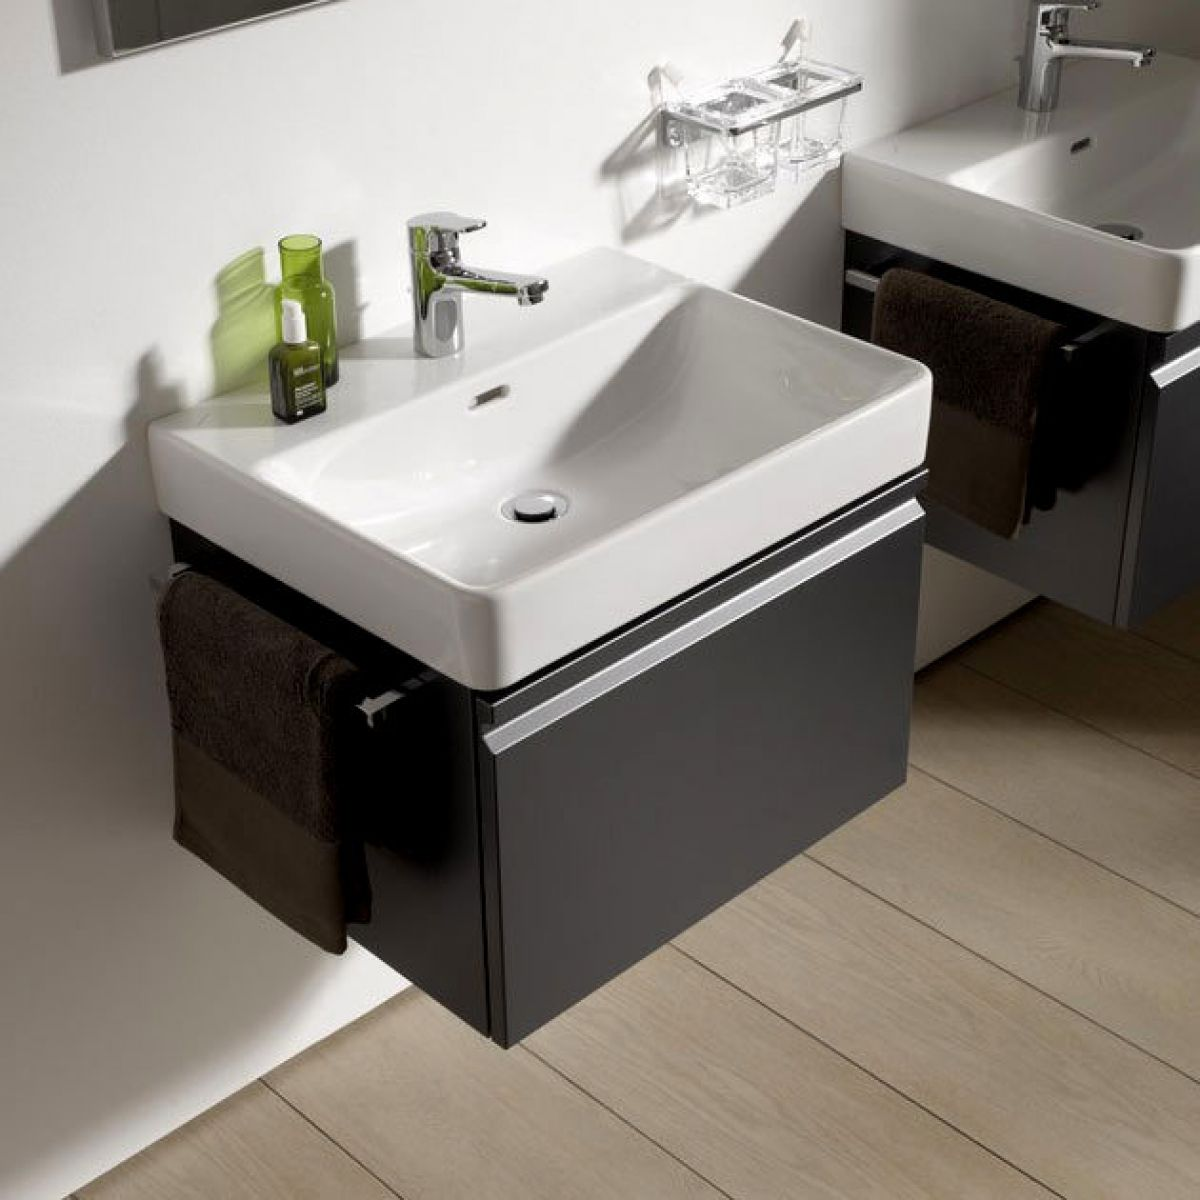 laufen pro s vanity unit with washbasin uk bathrooms. Black Bedroom Furniture Sets. Home Design Ideas